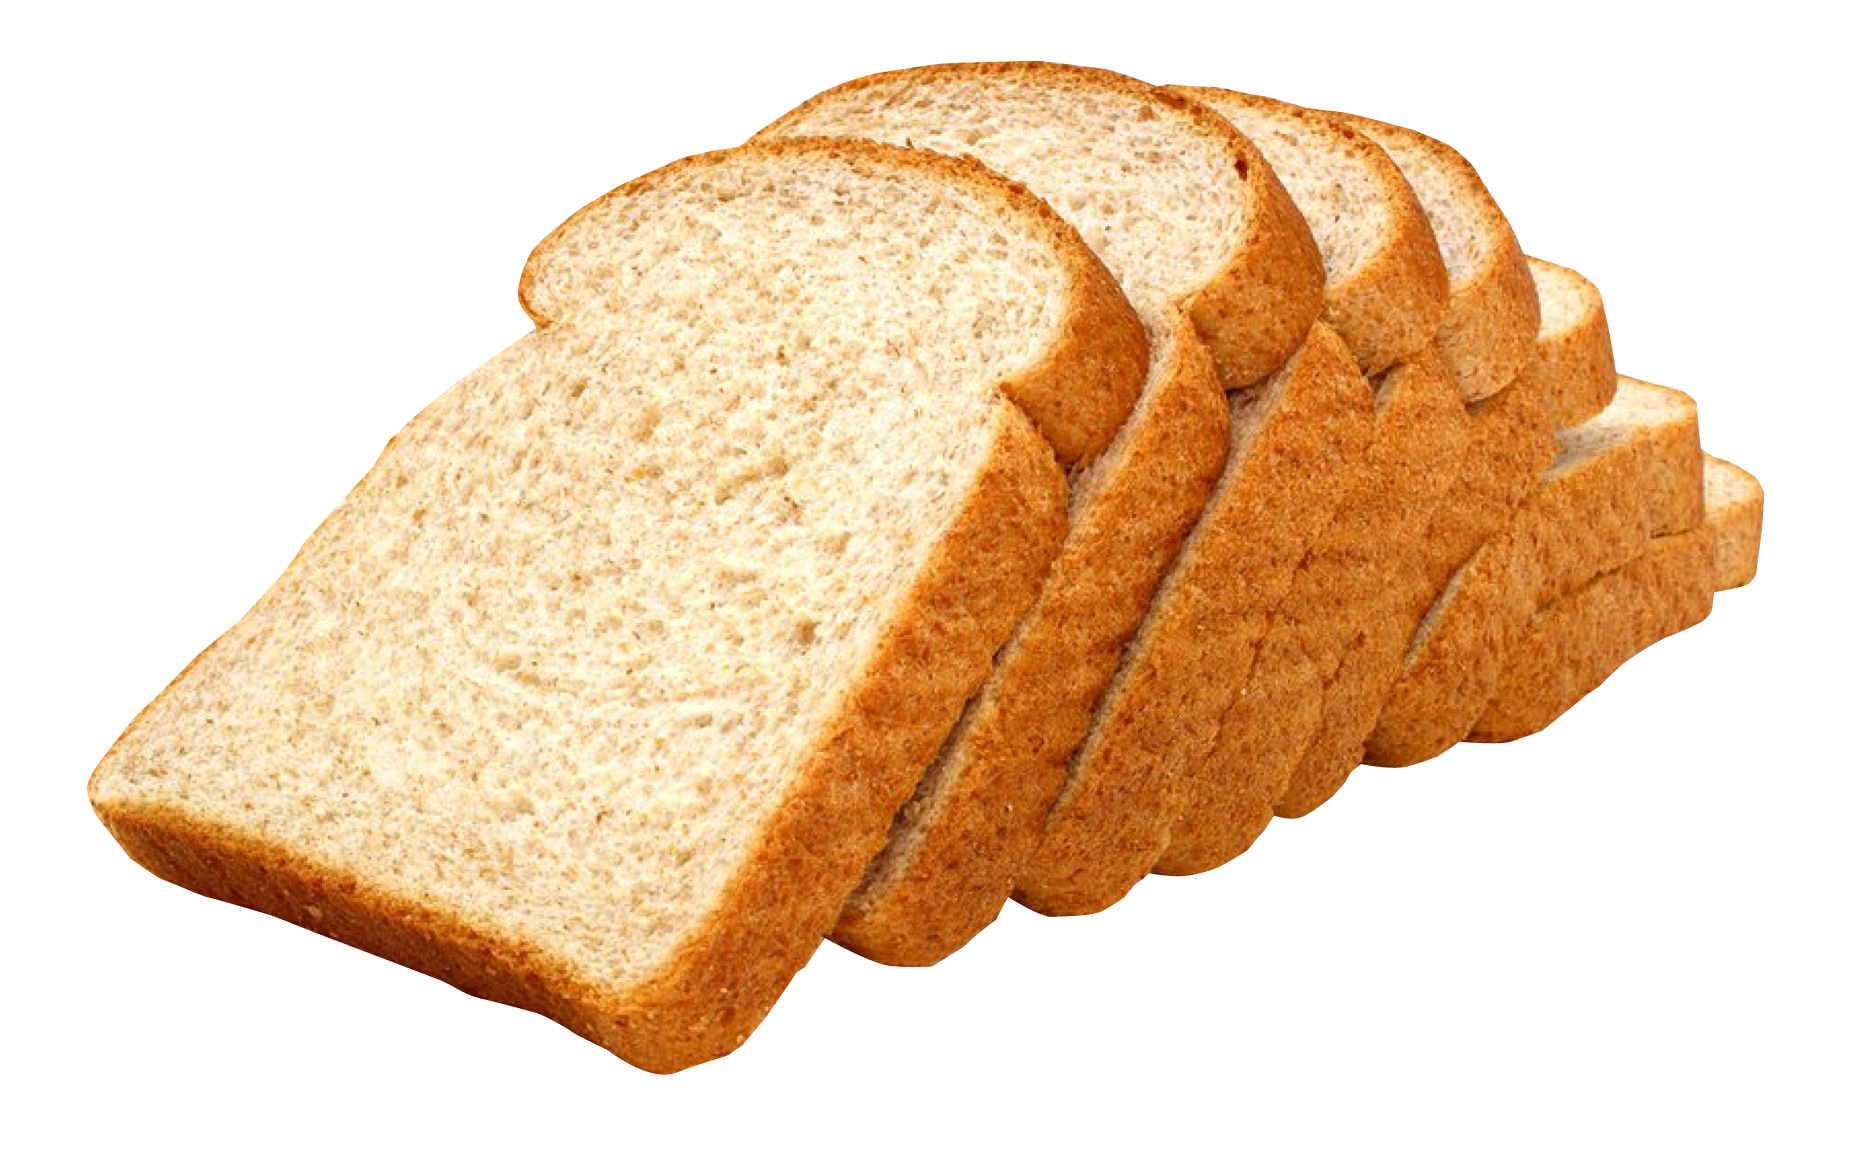 sliced wheat bread png image pngpix #18032